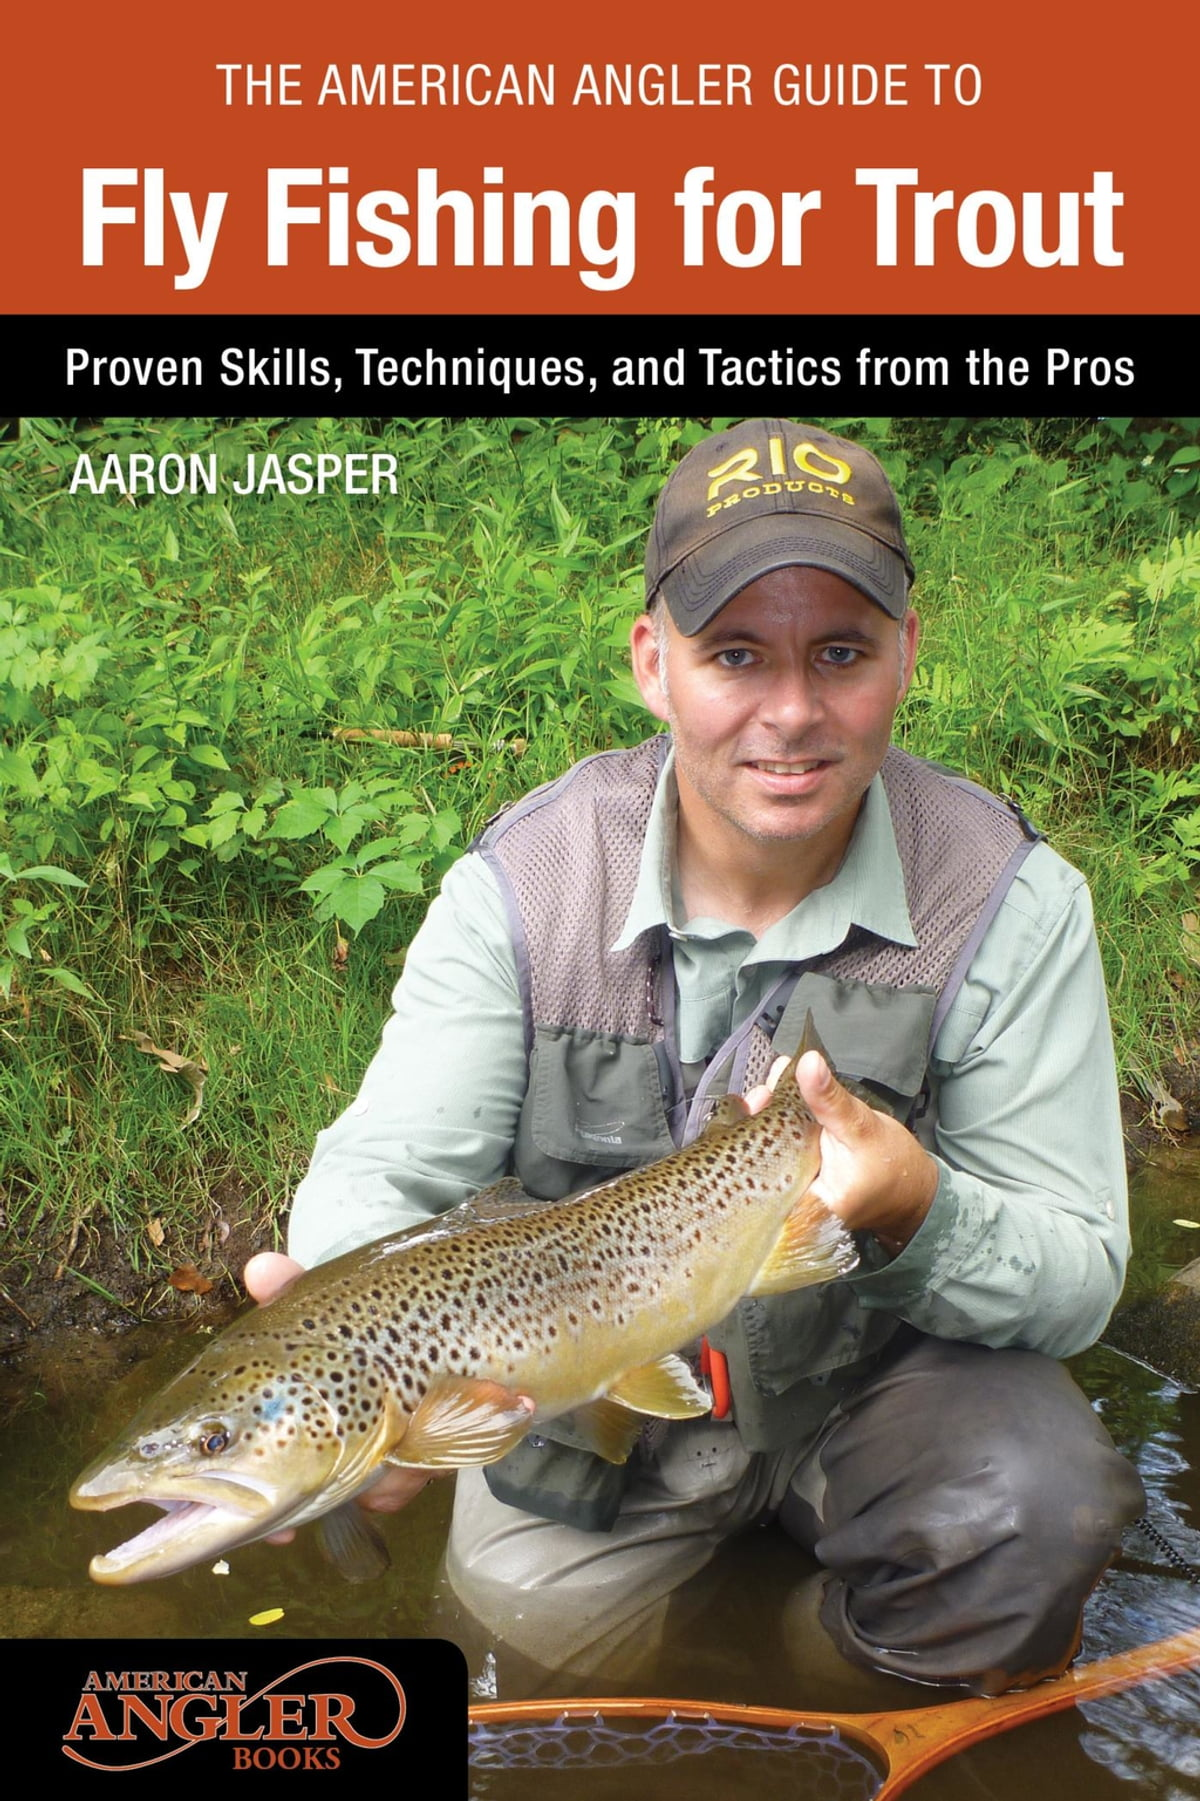 American Angler Guide to Fly Fishing for Trout eBook by Aaron Jasper |  Rakuten Kobo